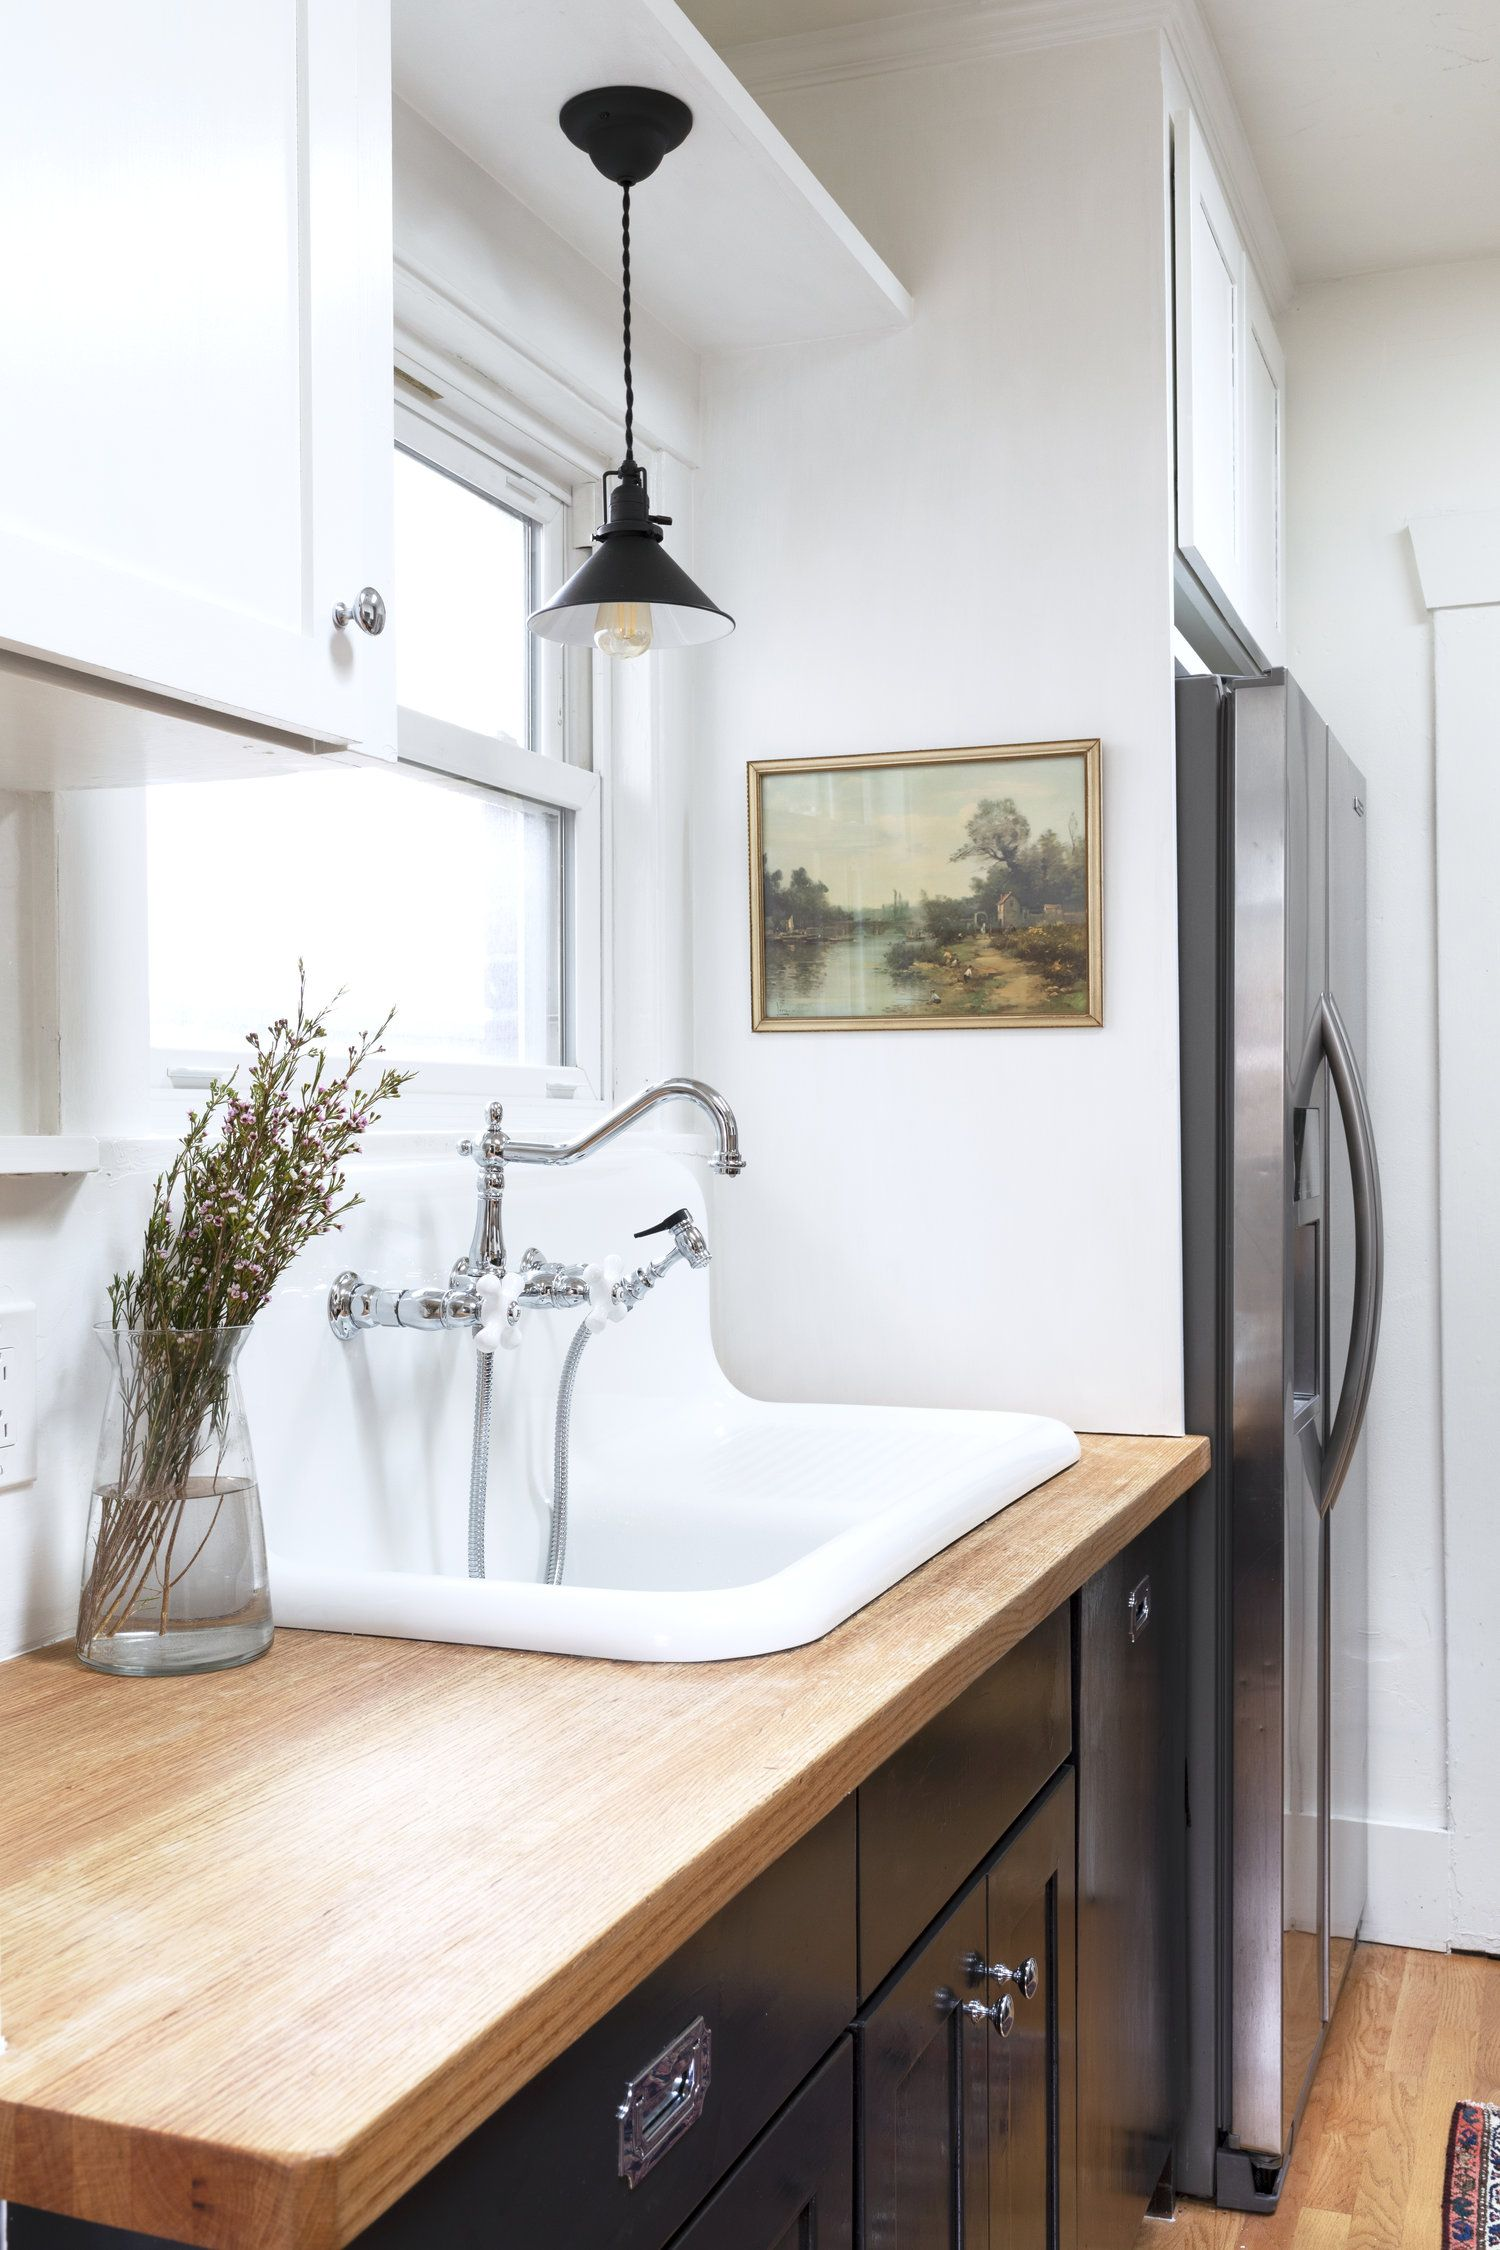 Dexter House Kitchen How To Make A New Faucet The Centerpiece